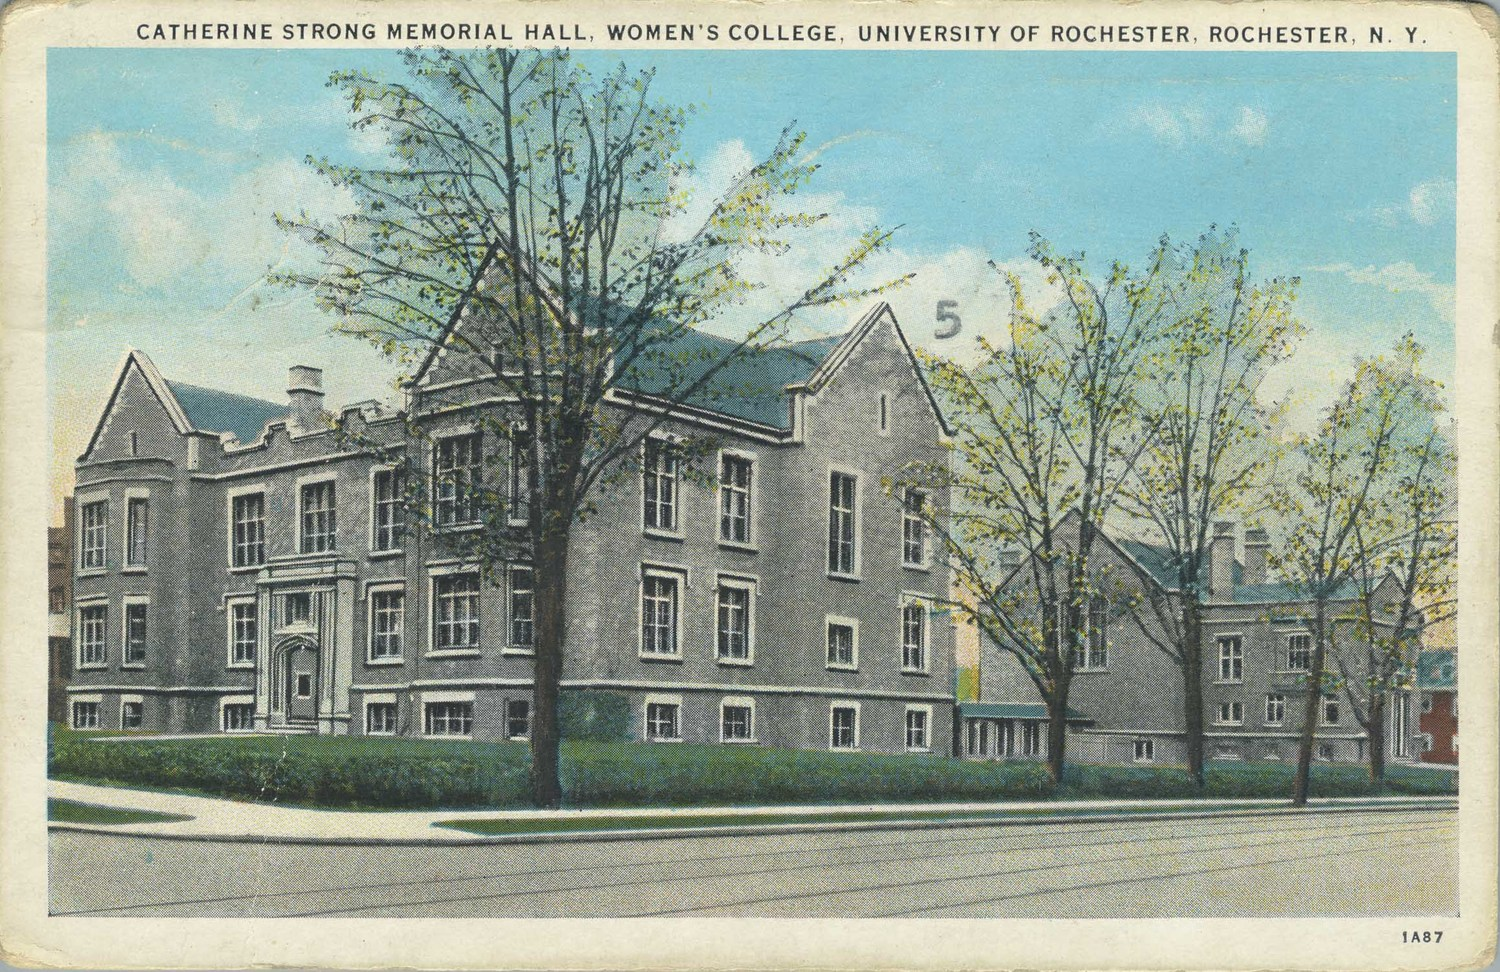 Catherine Strong Memorial Hall. Women's College. University of Rochester. Rochester N.Y.